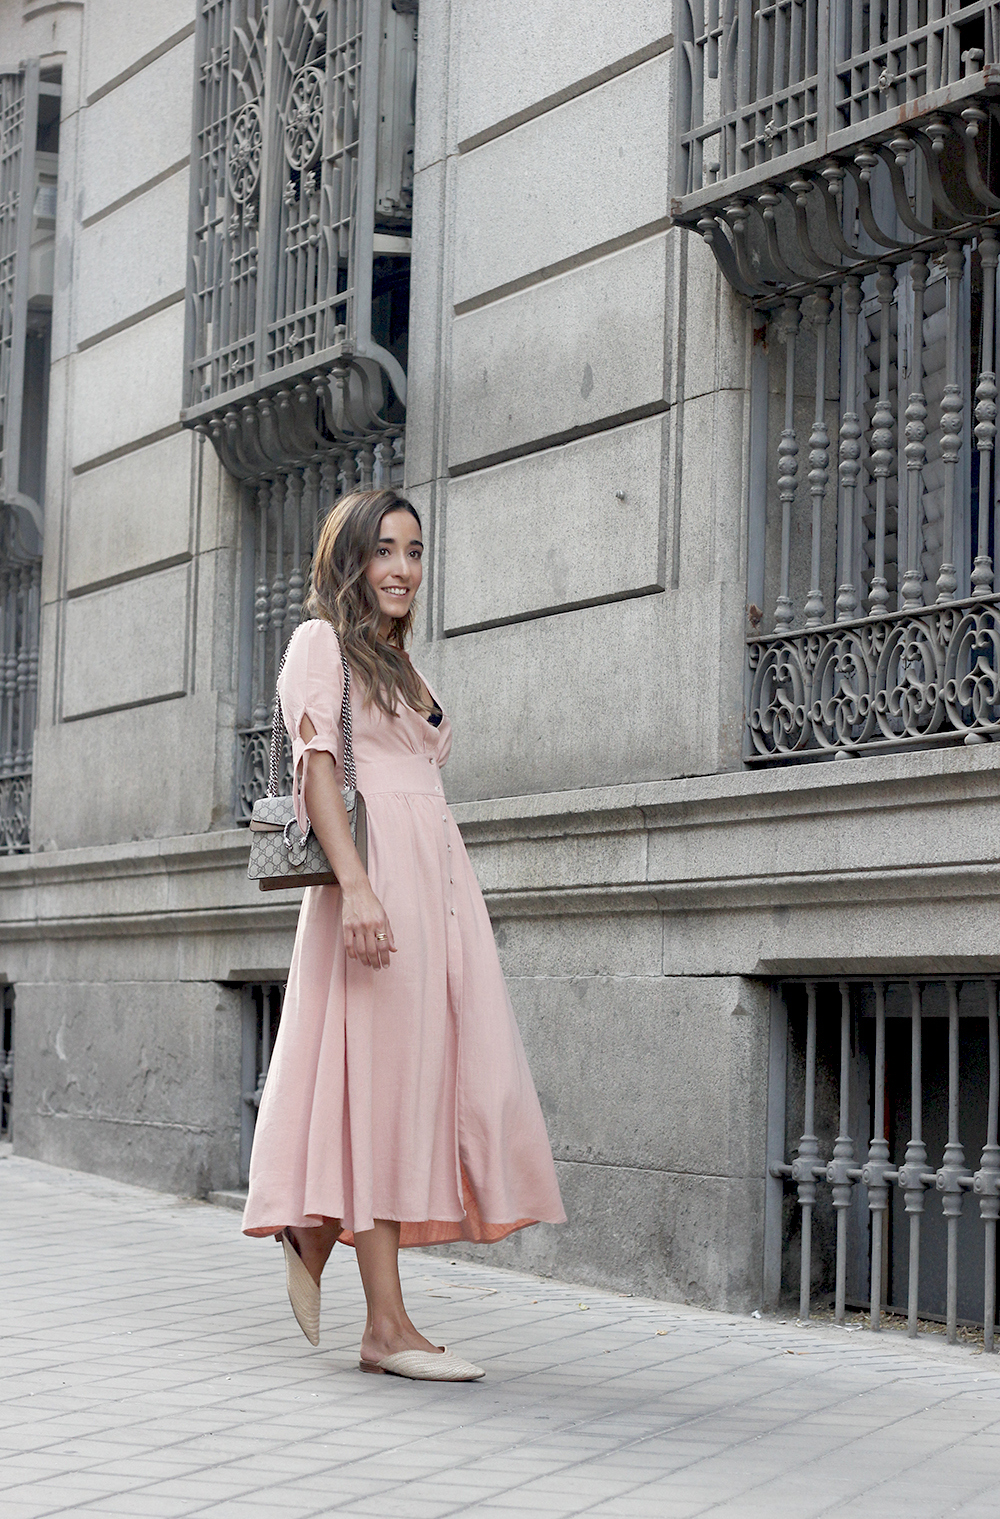 pink midi dress mules gucci bag outfit street style 201801